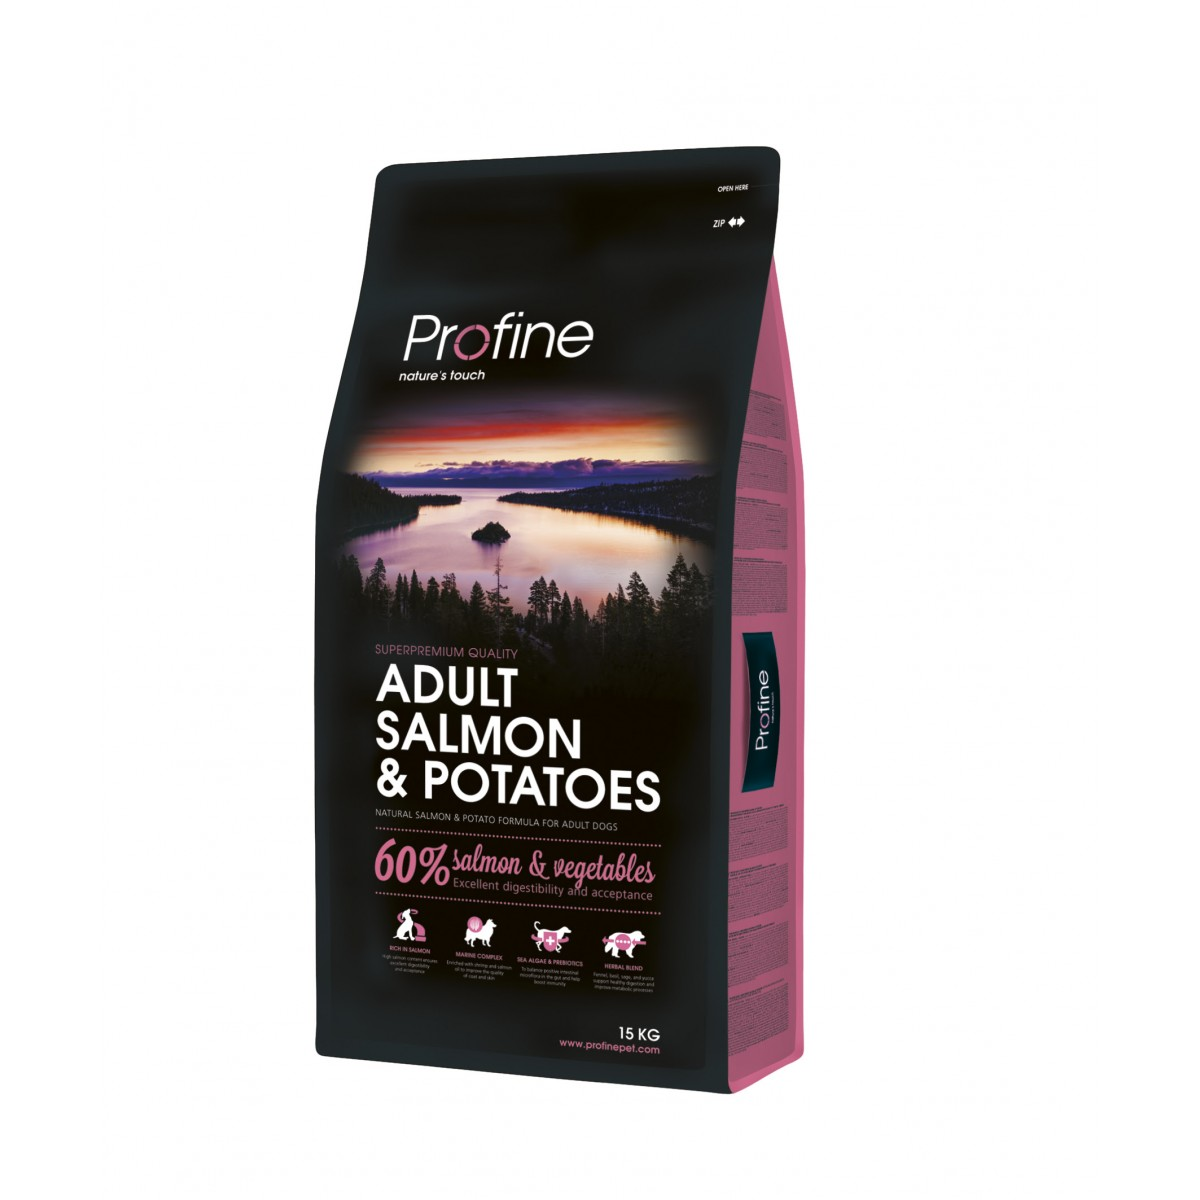 Profine Adult Salmon and Potatoes 15kg